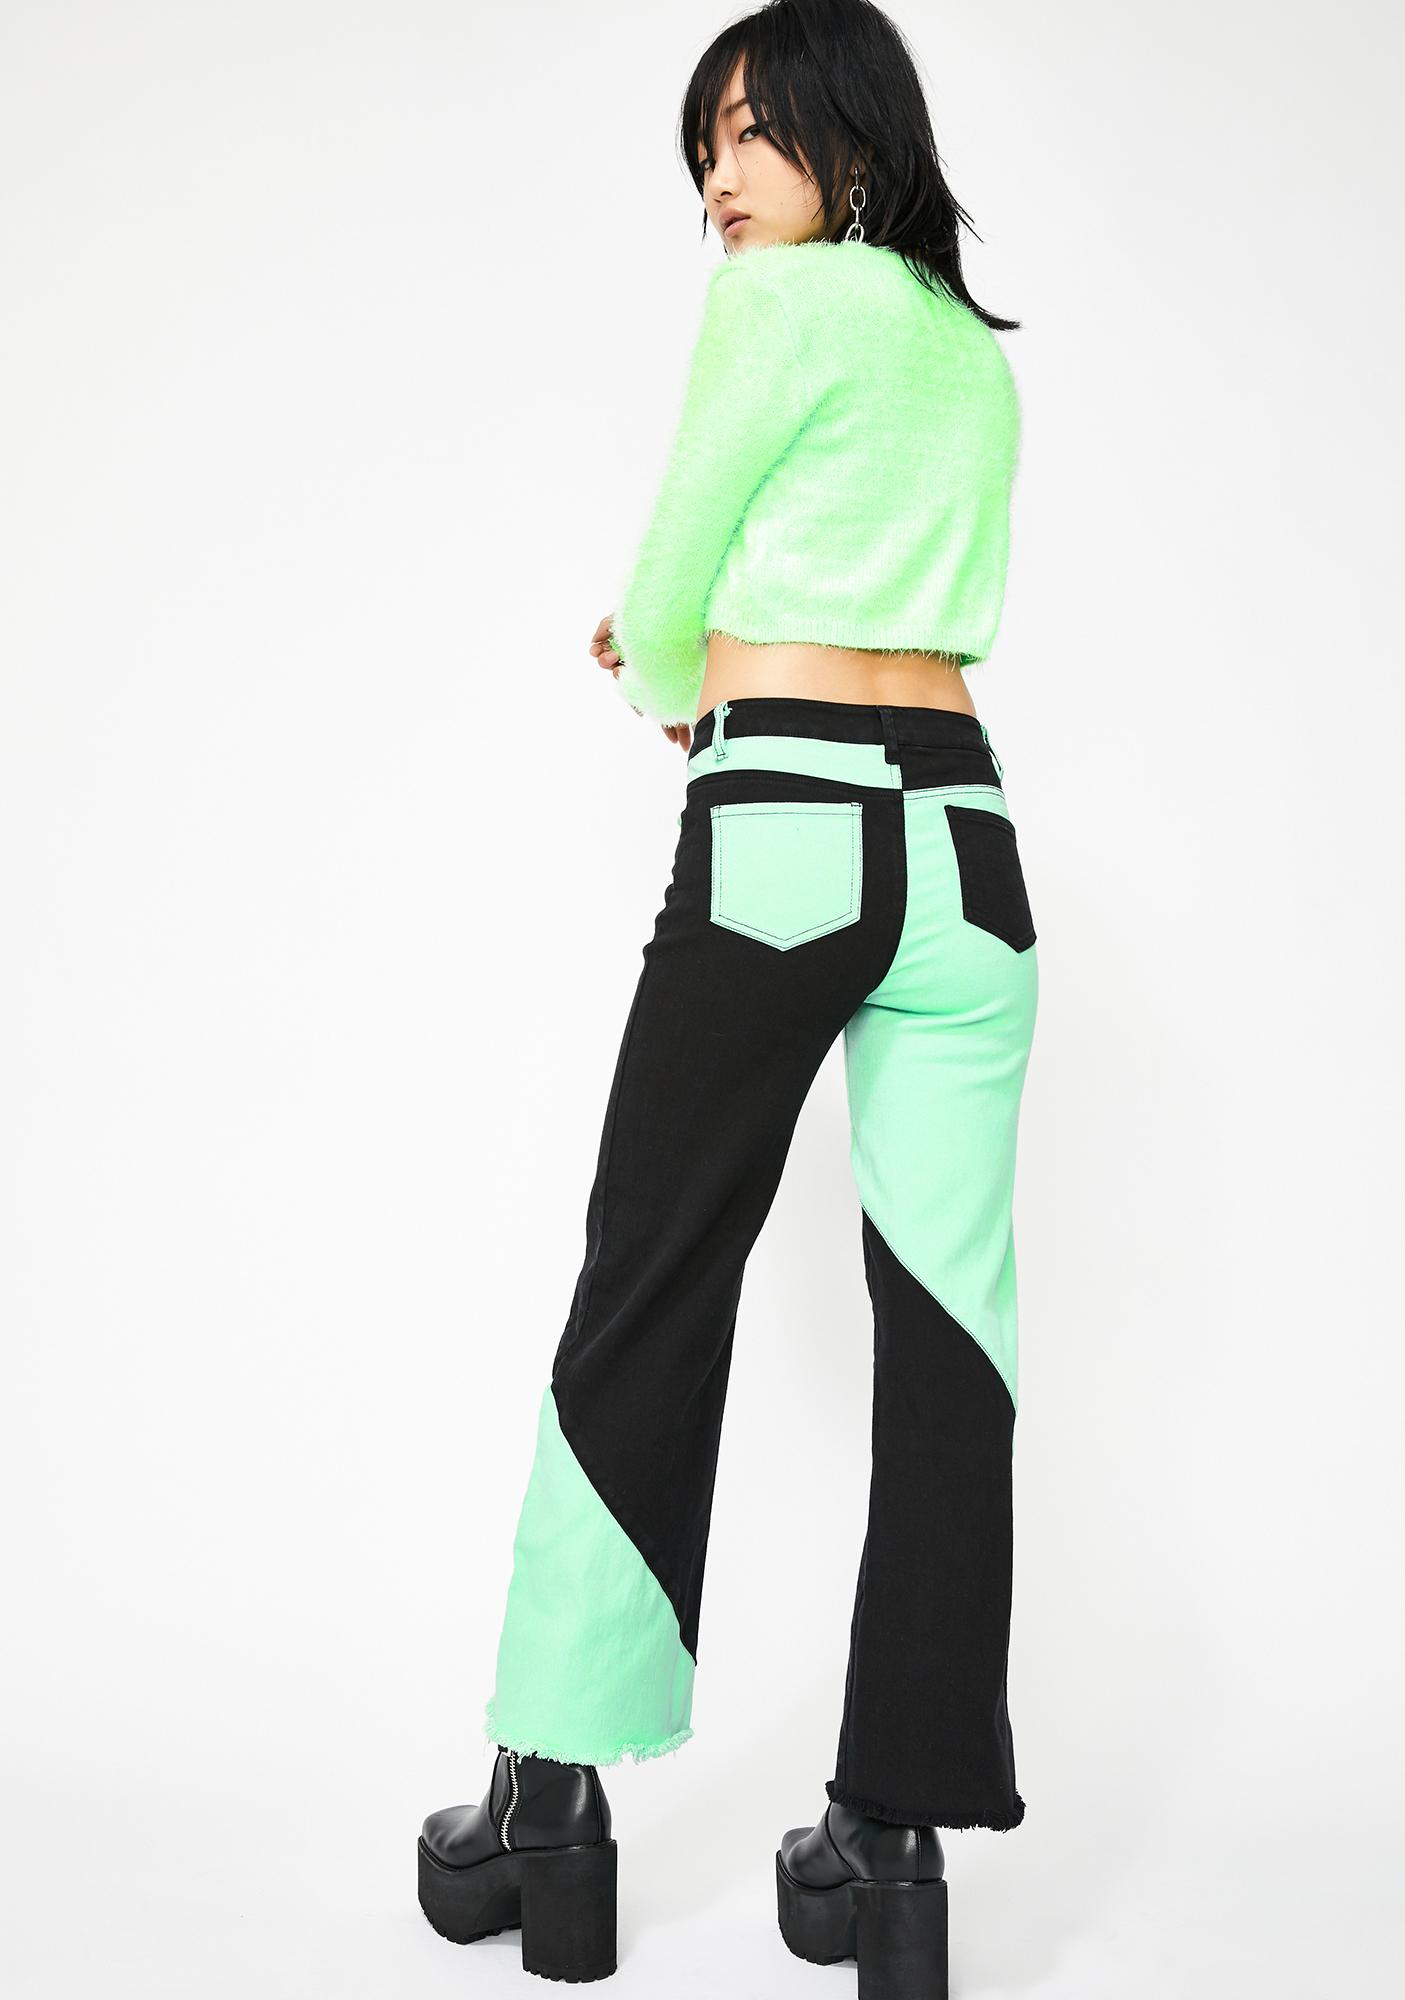 Current Mood Double Agent Colorblock Jeans